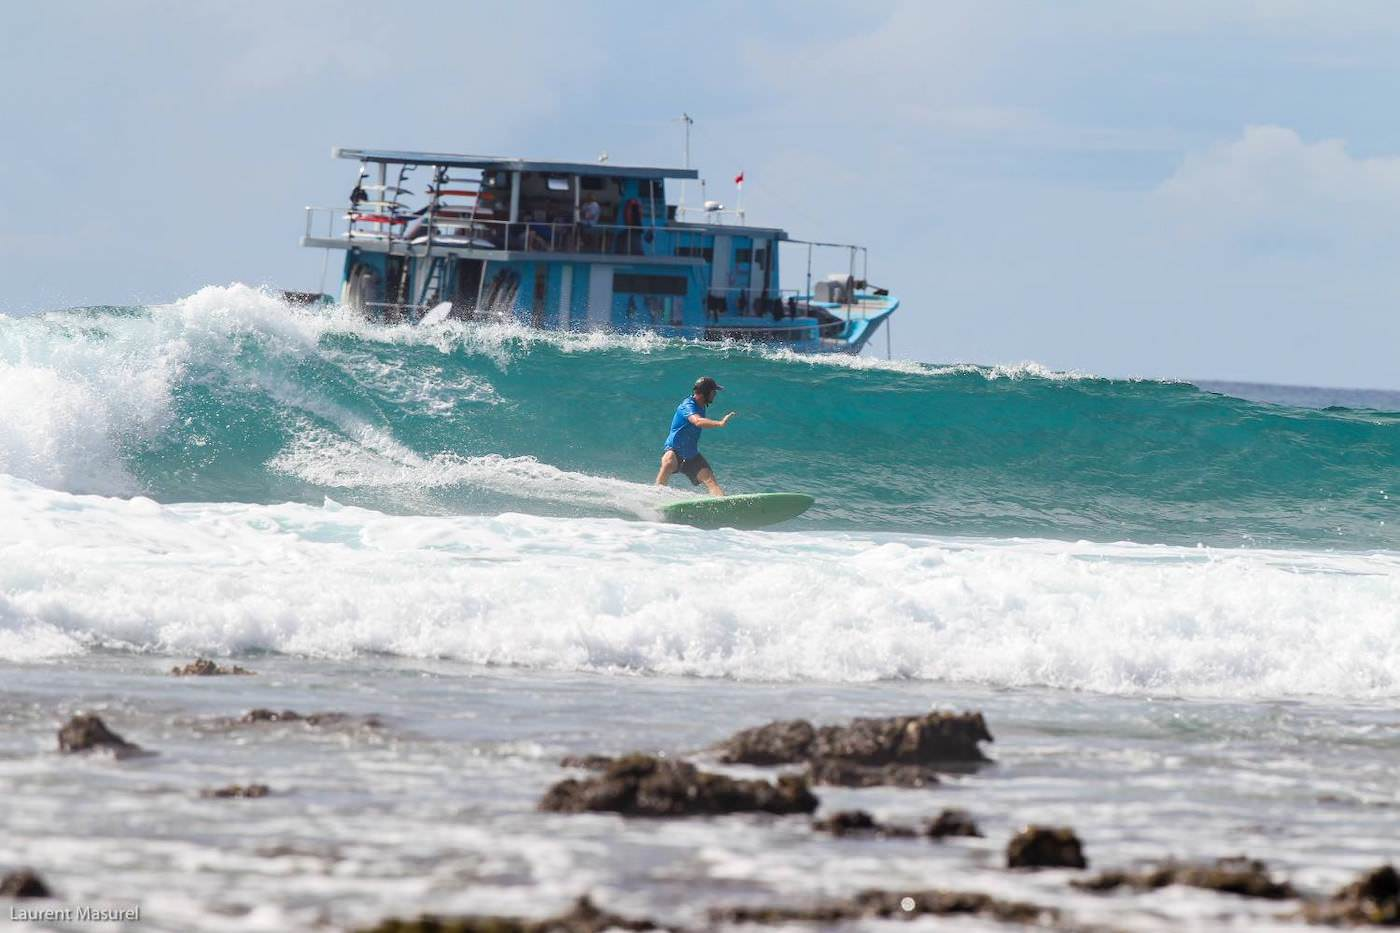 The Dream Banyak Islands Surf Charter Boat waves